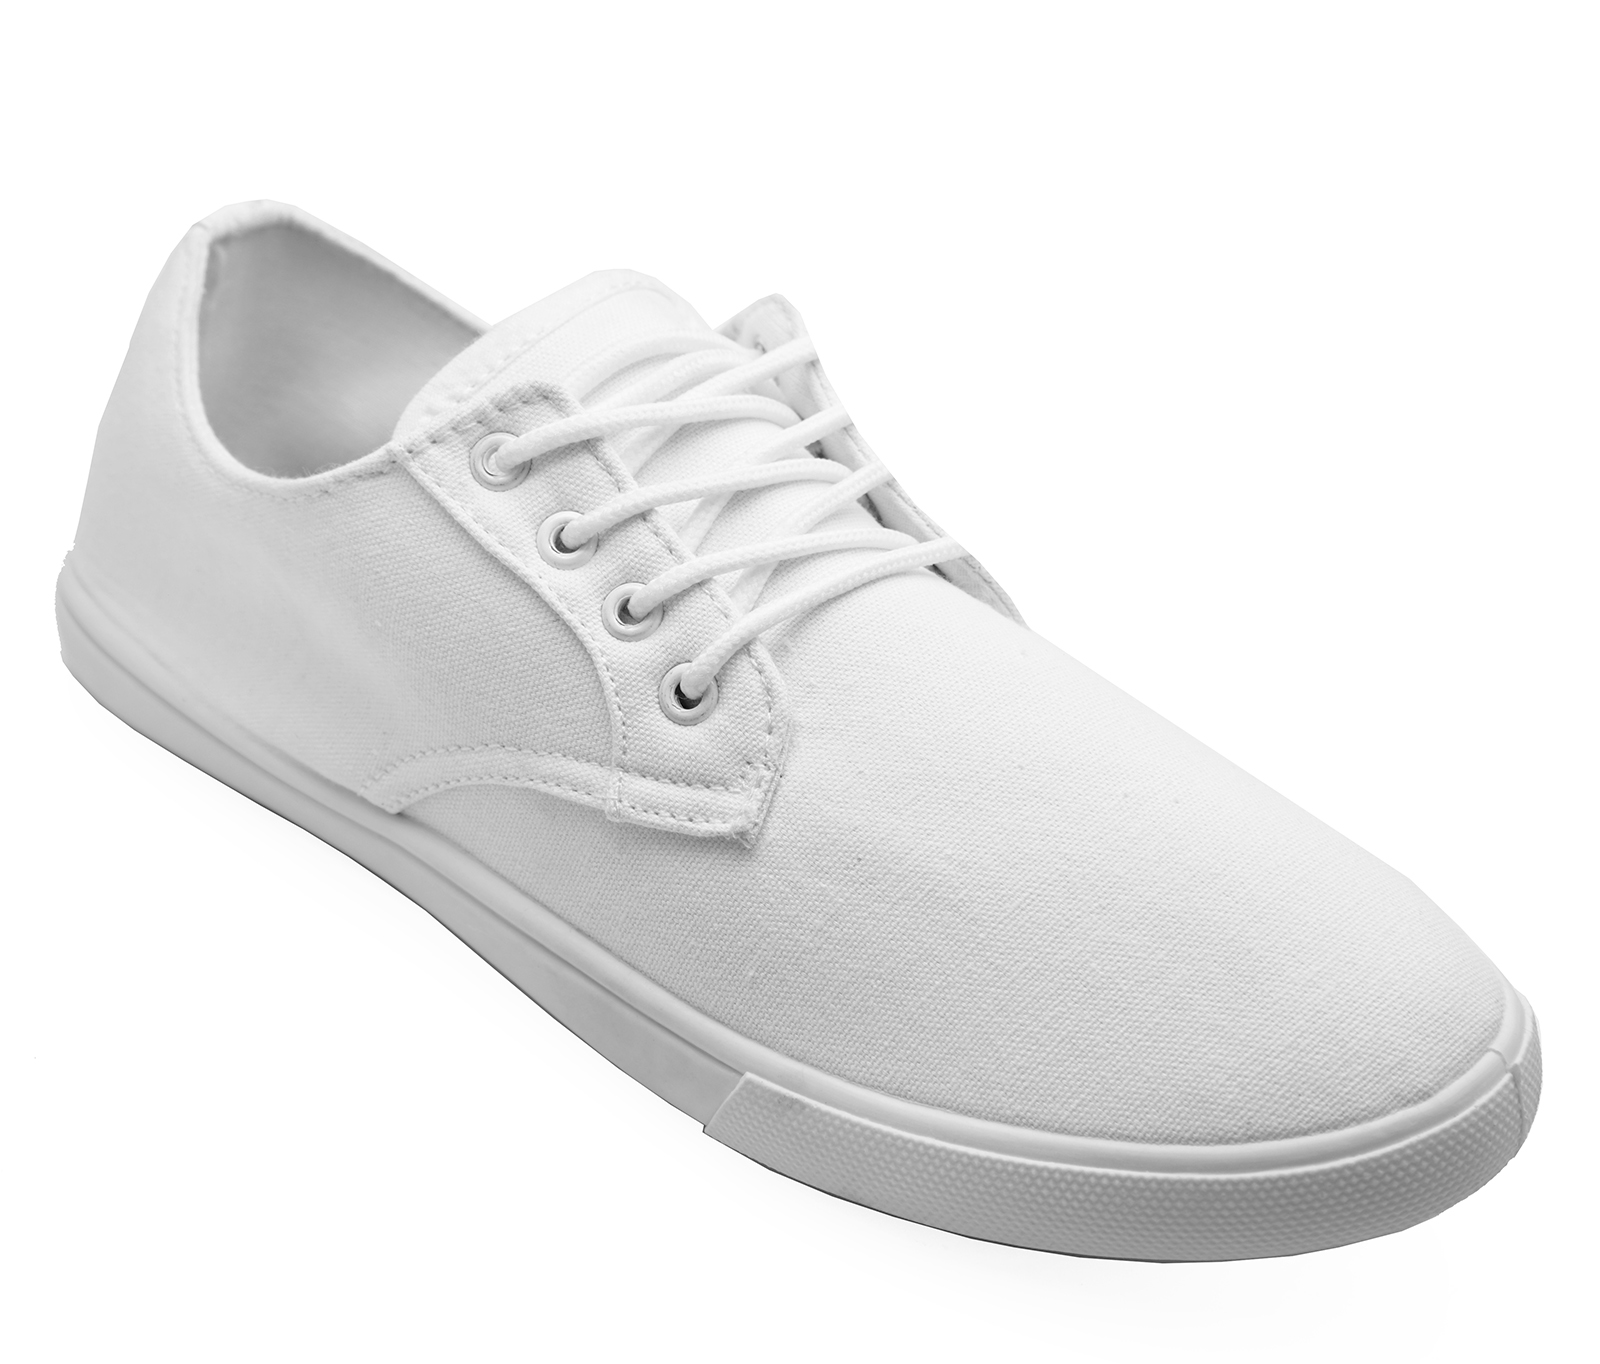 MENS-LACE-UP-WHITE-CANVAS-FLAT-TRAINER-PLIMSOLL-PUMPS-CASUAL-SHOES-SIZES-6-12 thumbnail 20